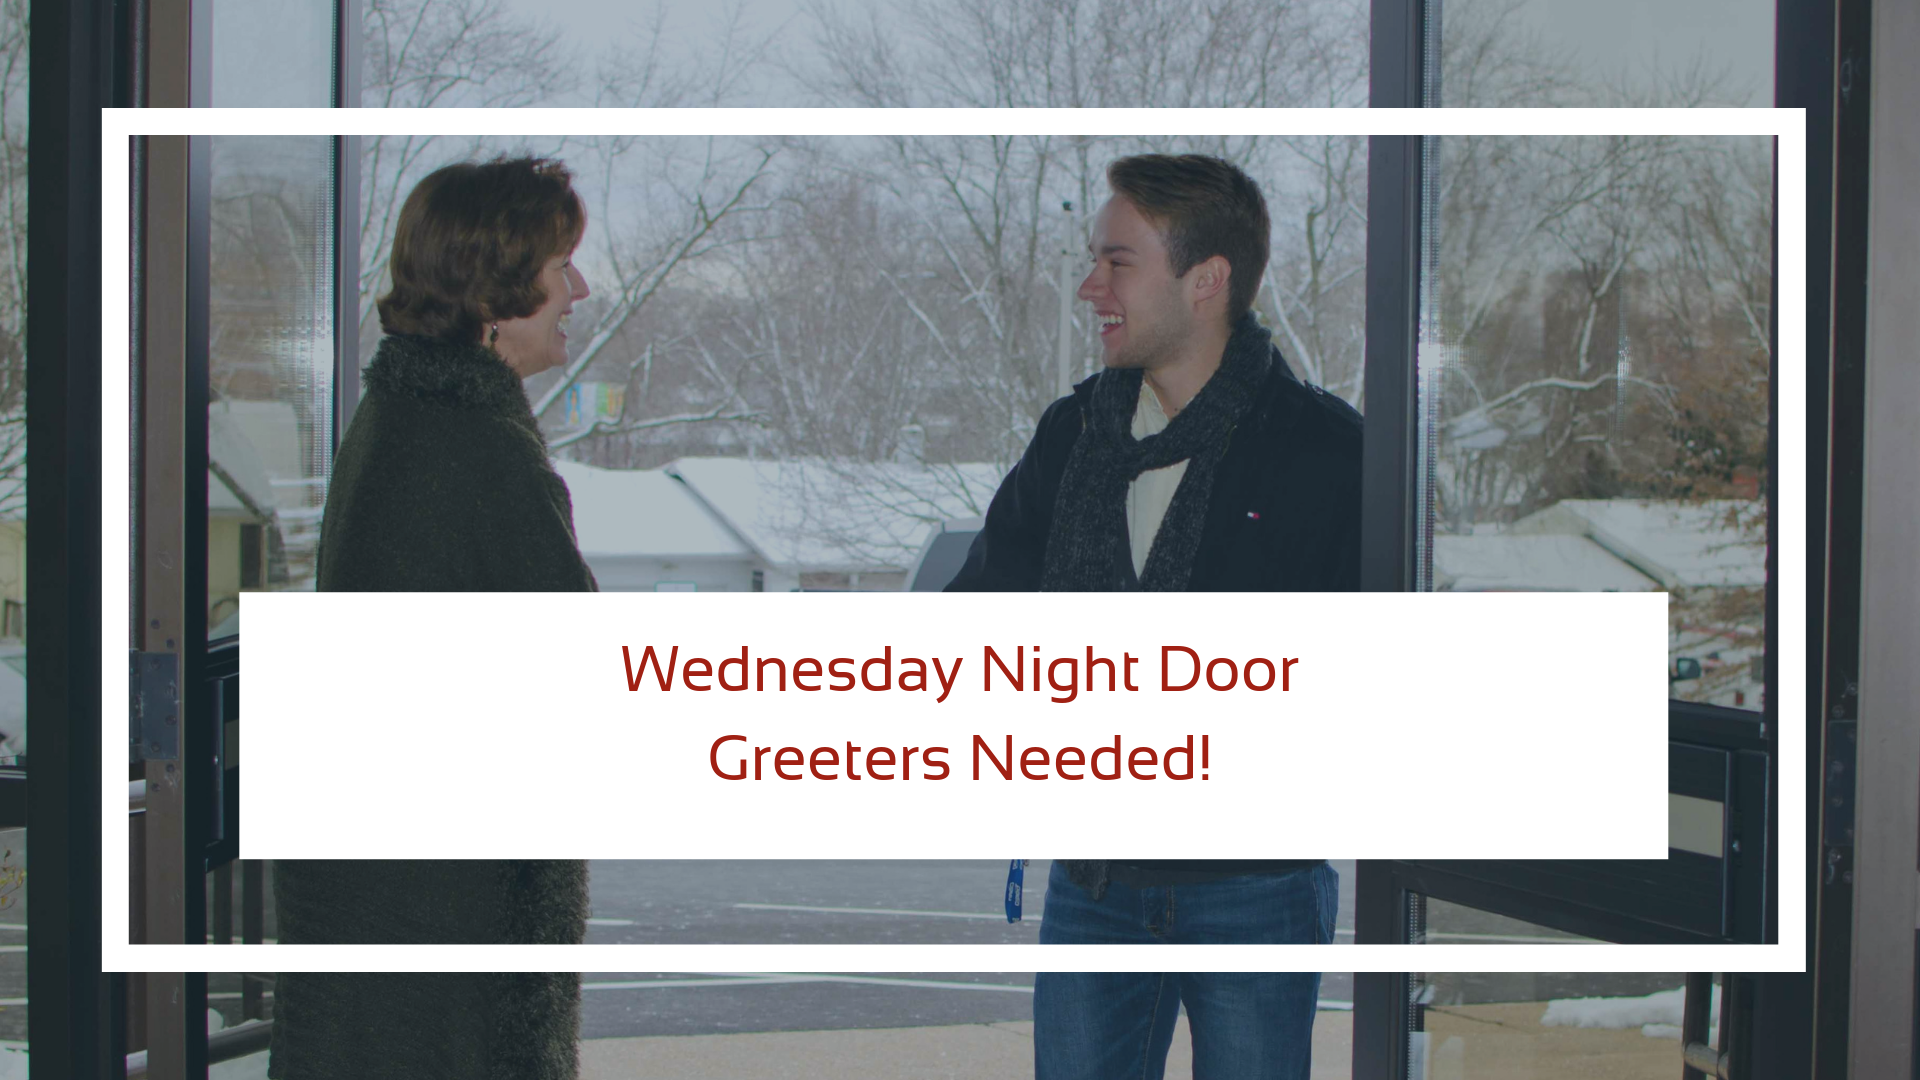 We're looking for some help on Wednesday nights to man the South doors during Wednesday night activities.  We're starting with two shifts: 5:45-6:45 and 6:45-7:45 and need just one door greeter at the South entrance. If you're able to help in this way,  click here to fill out a brief sign-up form.